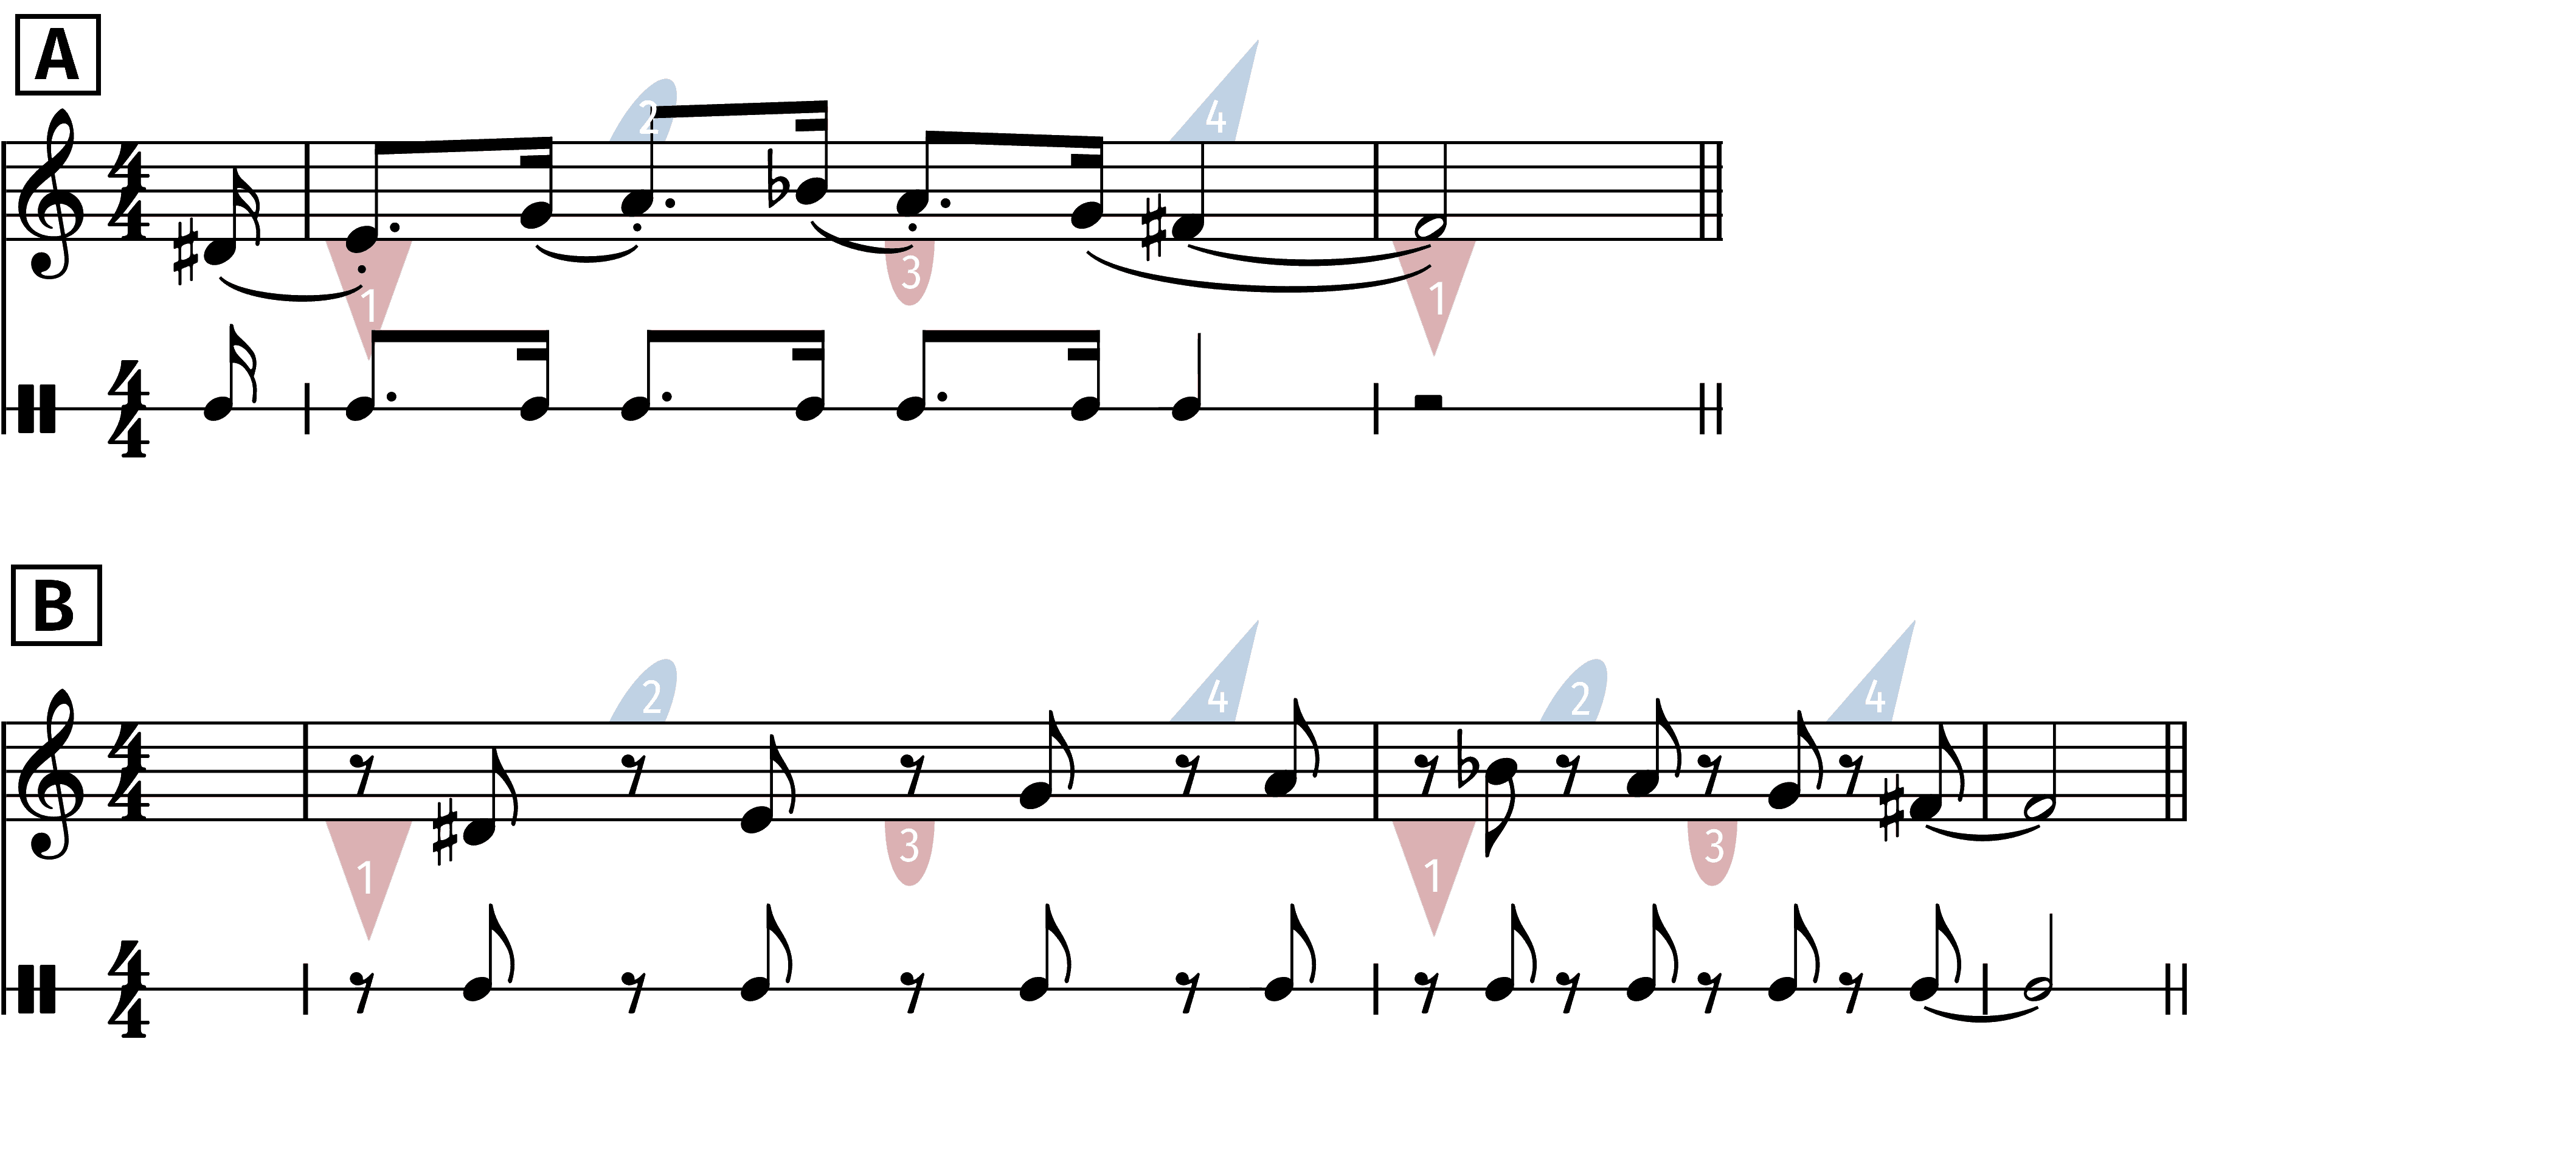 one series of notes; two rhythmic patterns